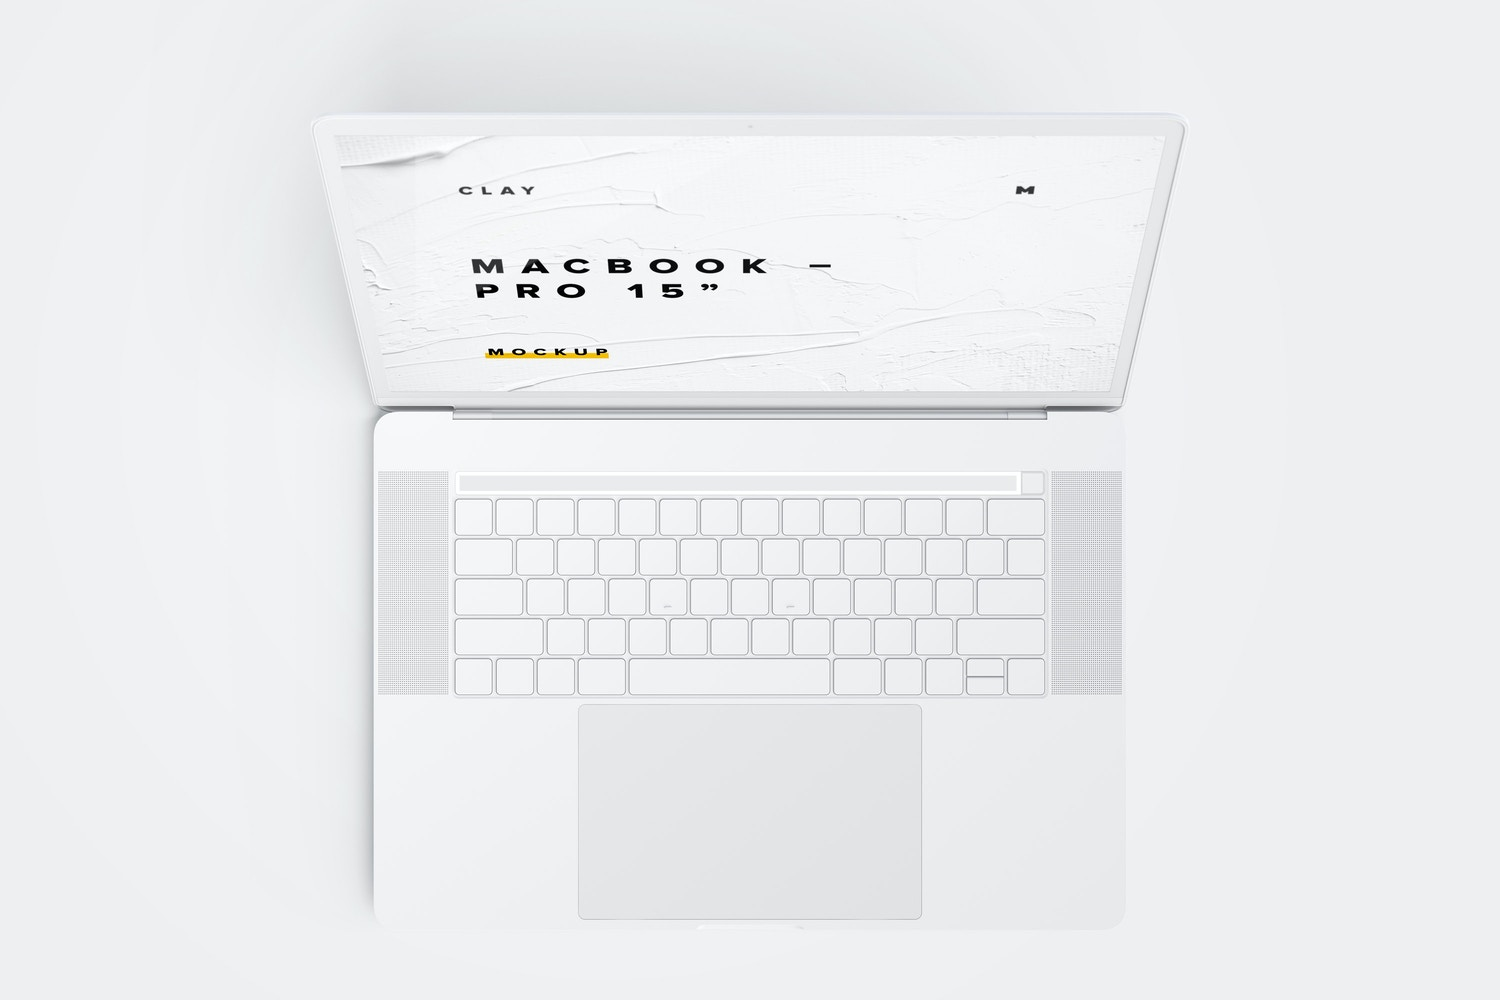 """Clay MacBook Pro 15"""" with Touch Bar, Top View Mockup (1) by Original Mockups on Original Mockups"""